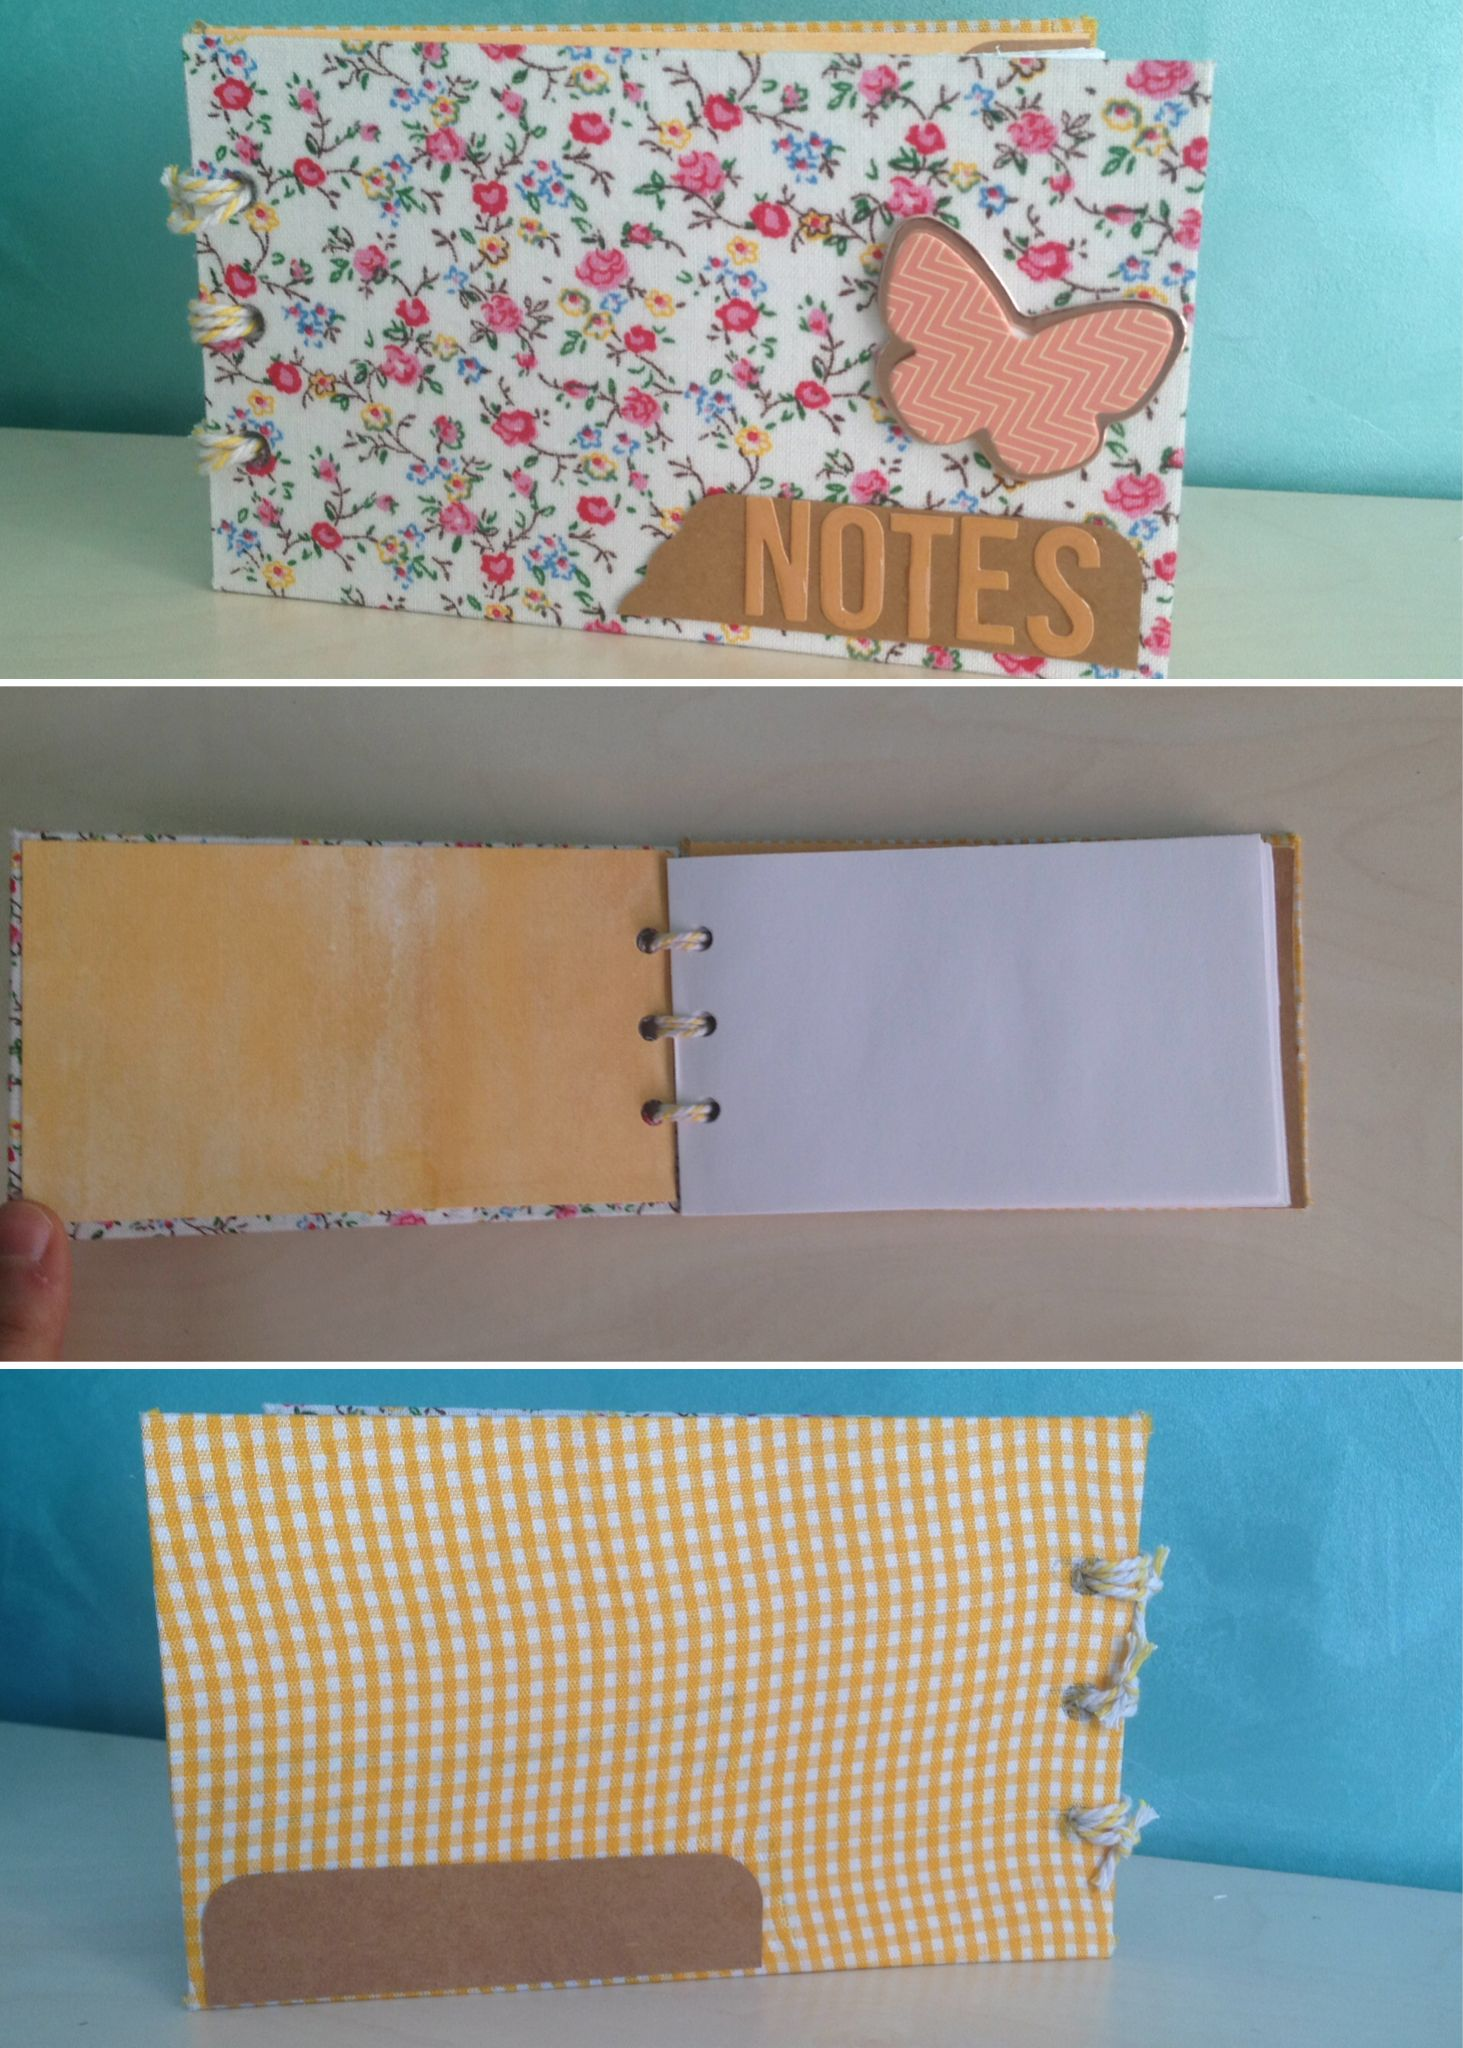 #handmade note pad #notes #scrapbooking